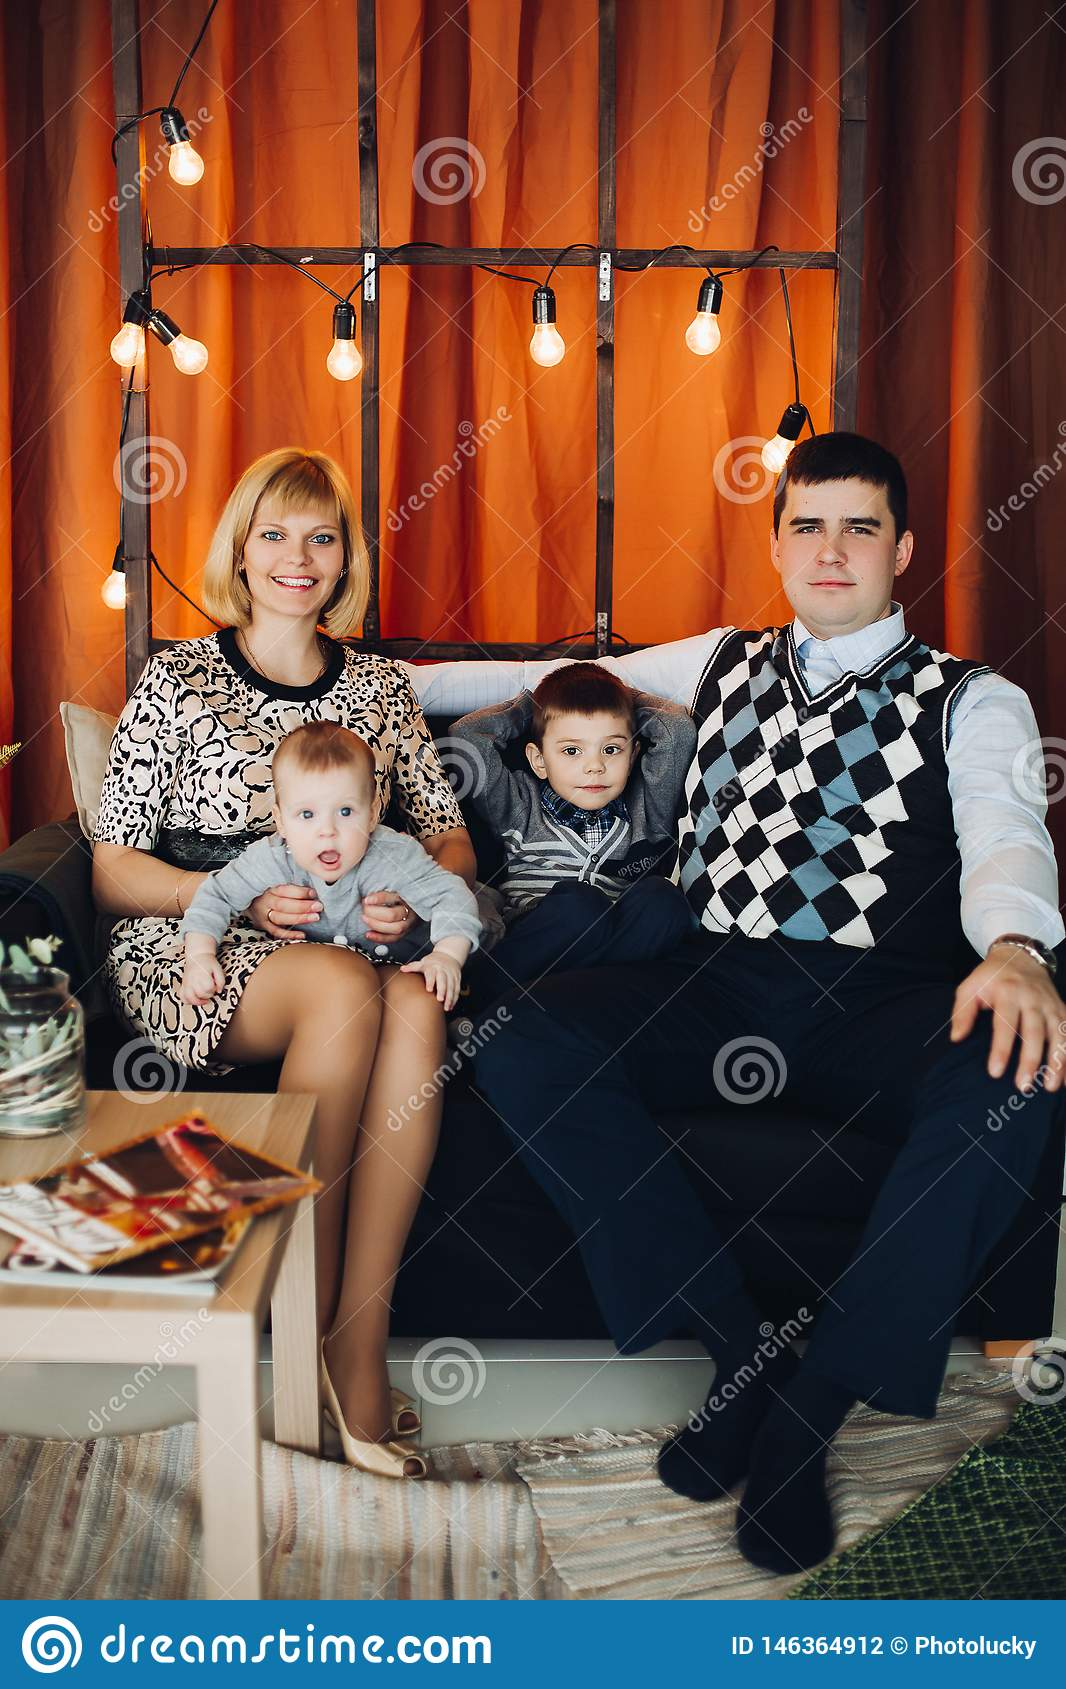 Portrait of happy family embracing in decorated studio.